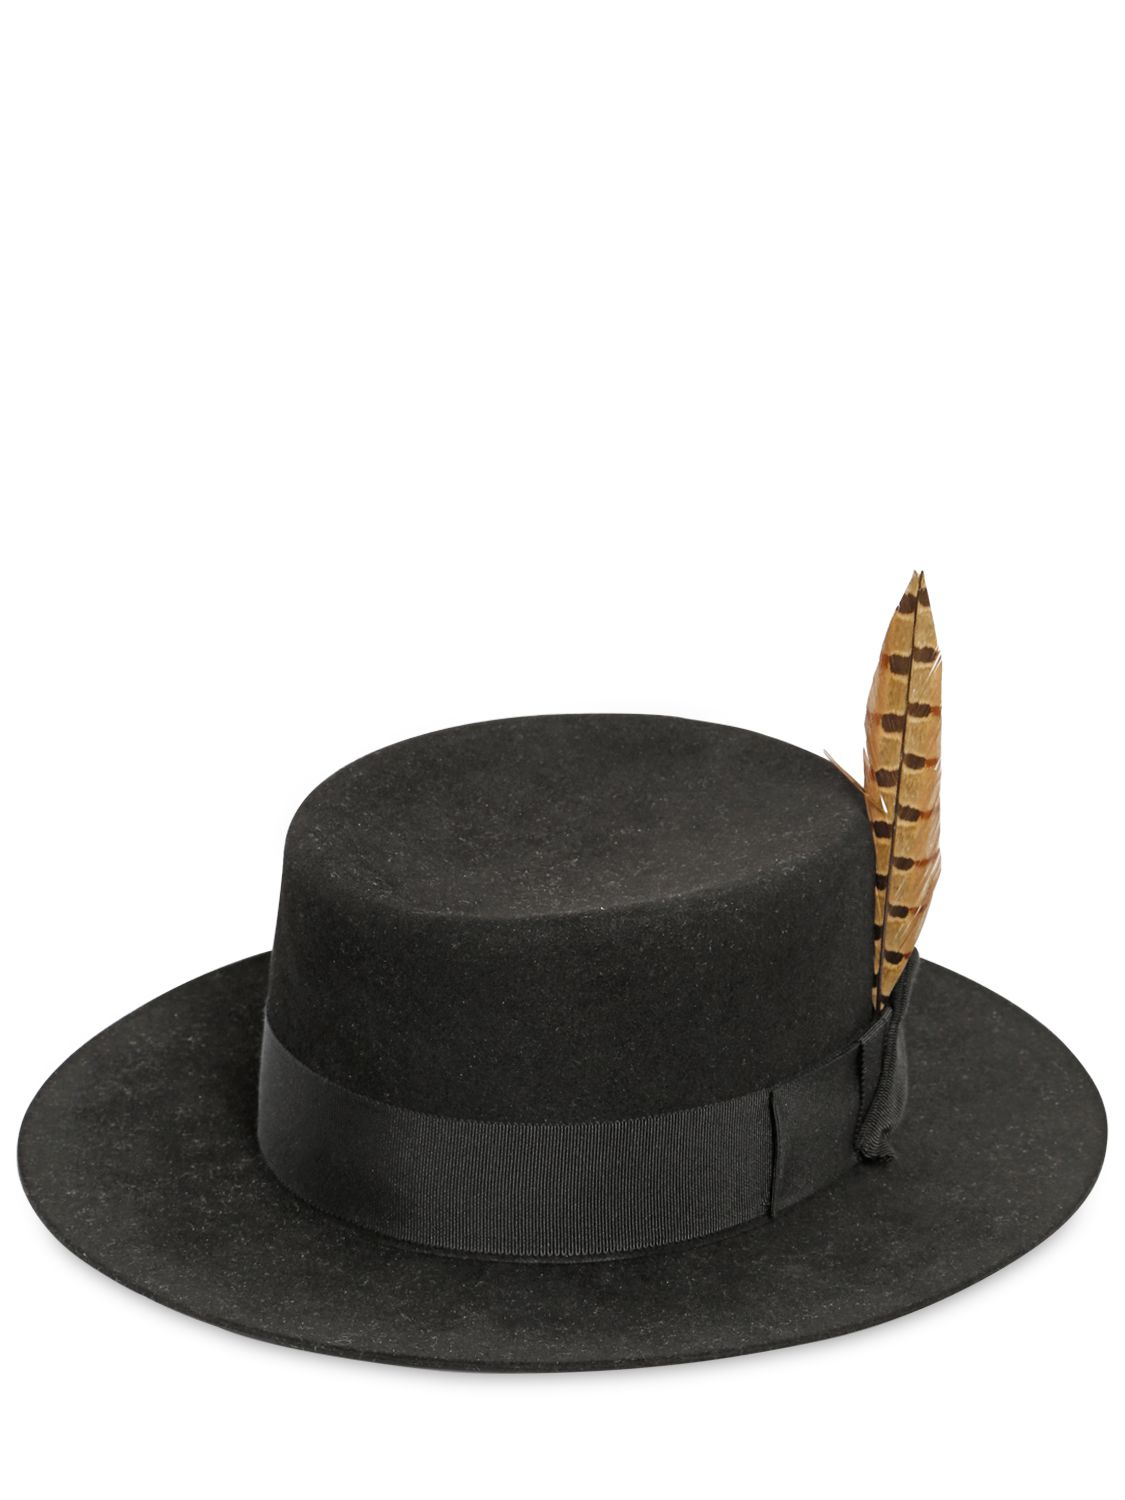 9c6f9abc5 Saint Laurent Black Felted Lapin Hat With Feather for men